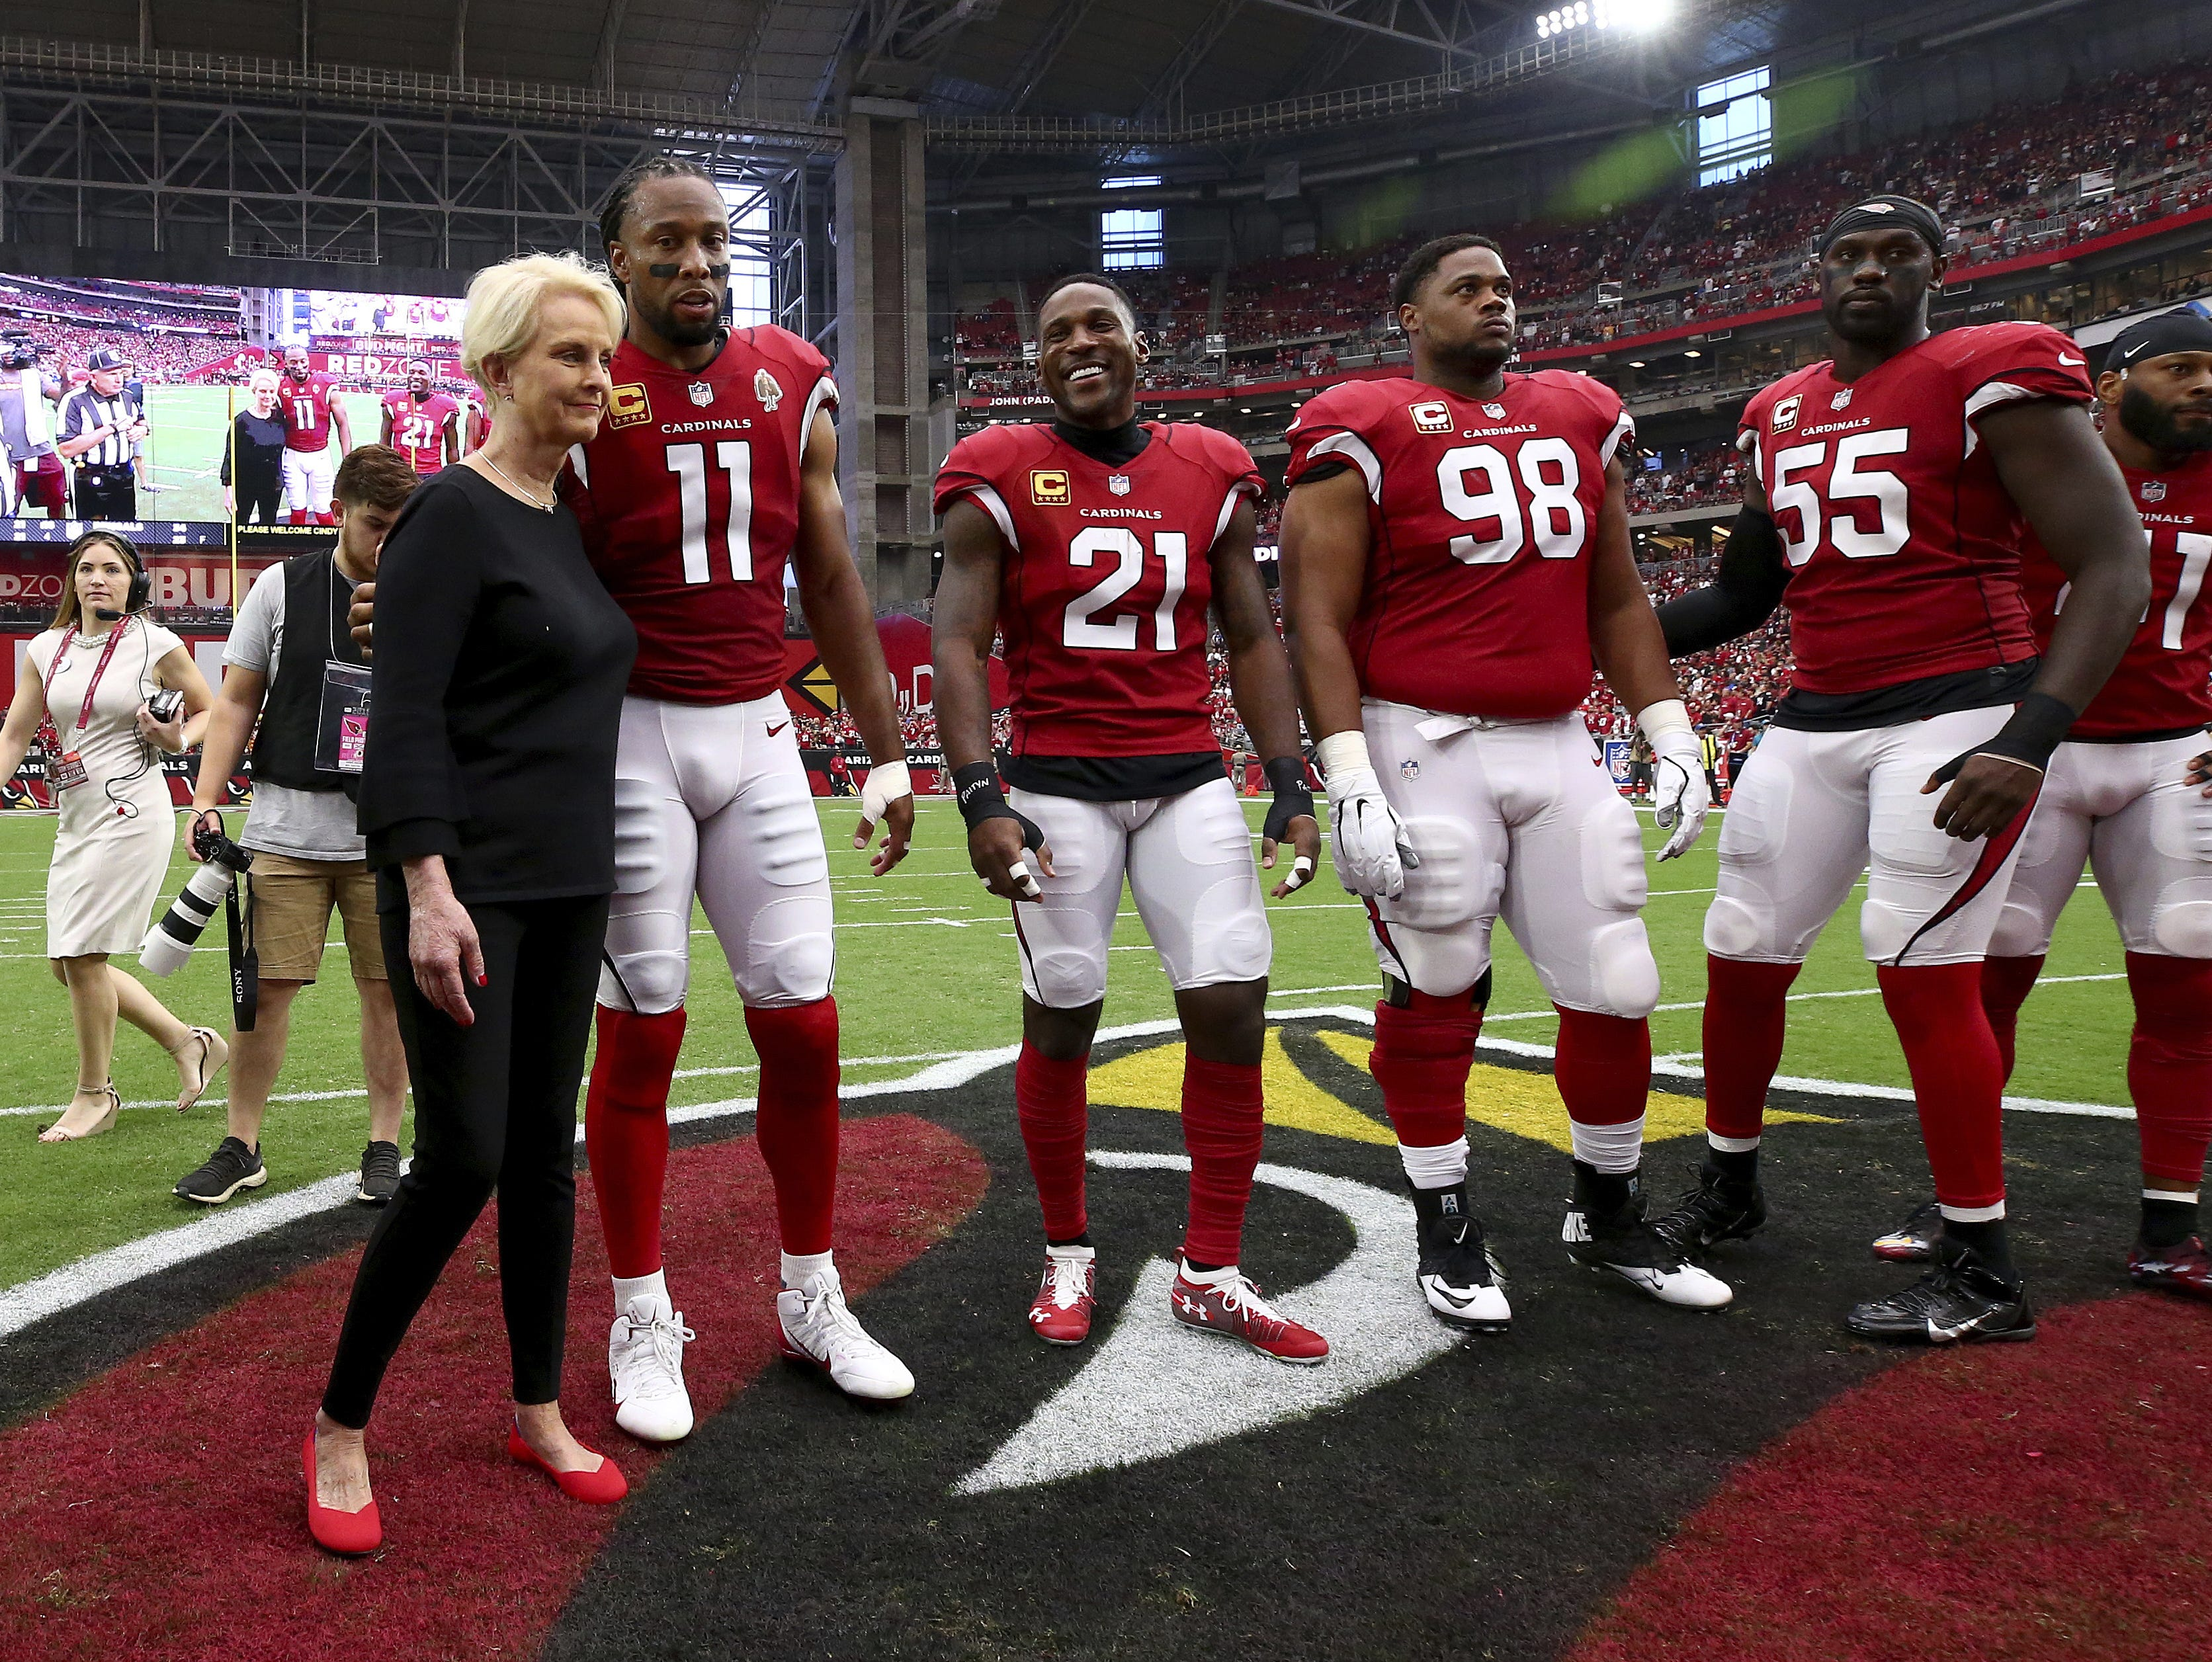 Cindy McCain, wife of the late U.S. Sen. John McCain, R-Ariz., embraces Arizona Cardinals' Larry Fitzgerald (11), Patrick Peterson (21), Corey Peters (98) and Chandler Jones (55) as an honorary team captain during the coin toss prior to an NFL football game against the Washington Redskins , Sunday, Sept. 9, 2018, in Glendale, Ariz. Rob Schumacher/The Republic